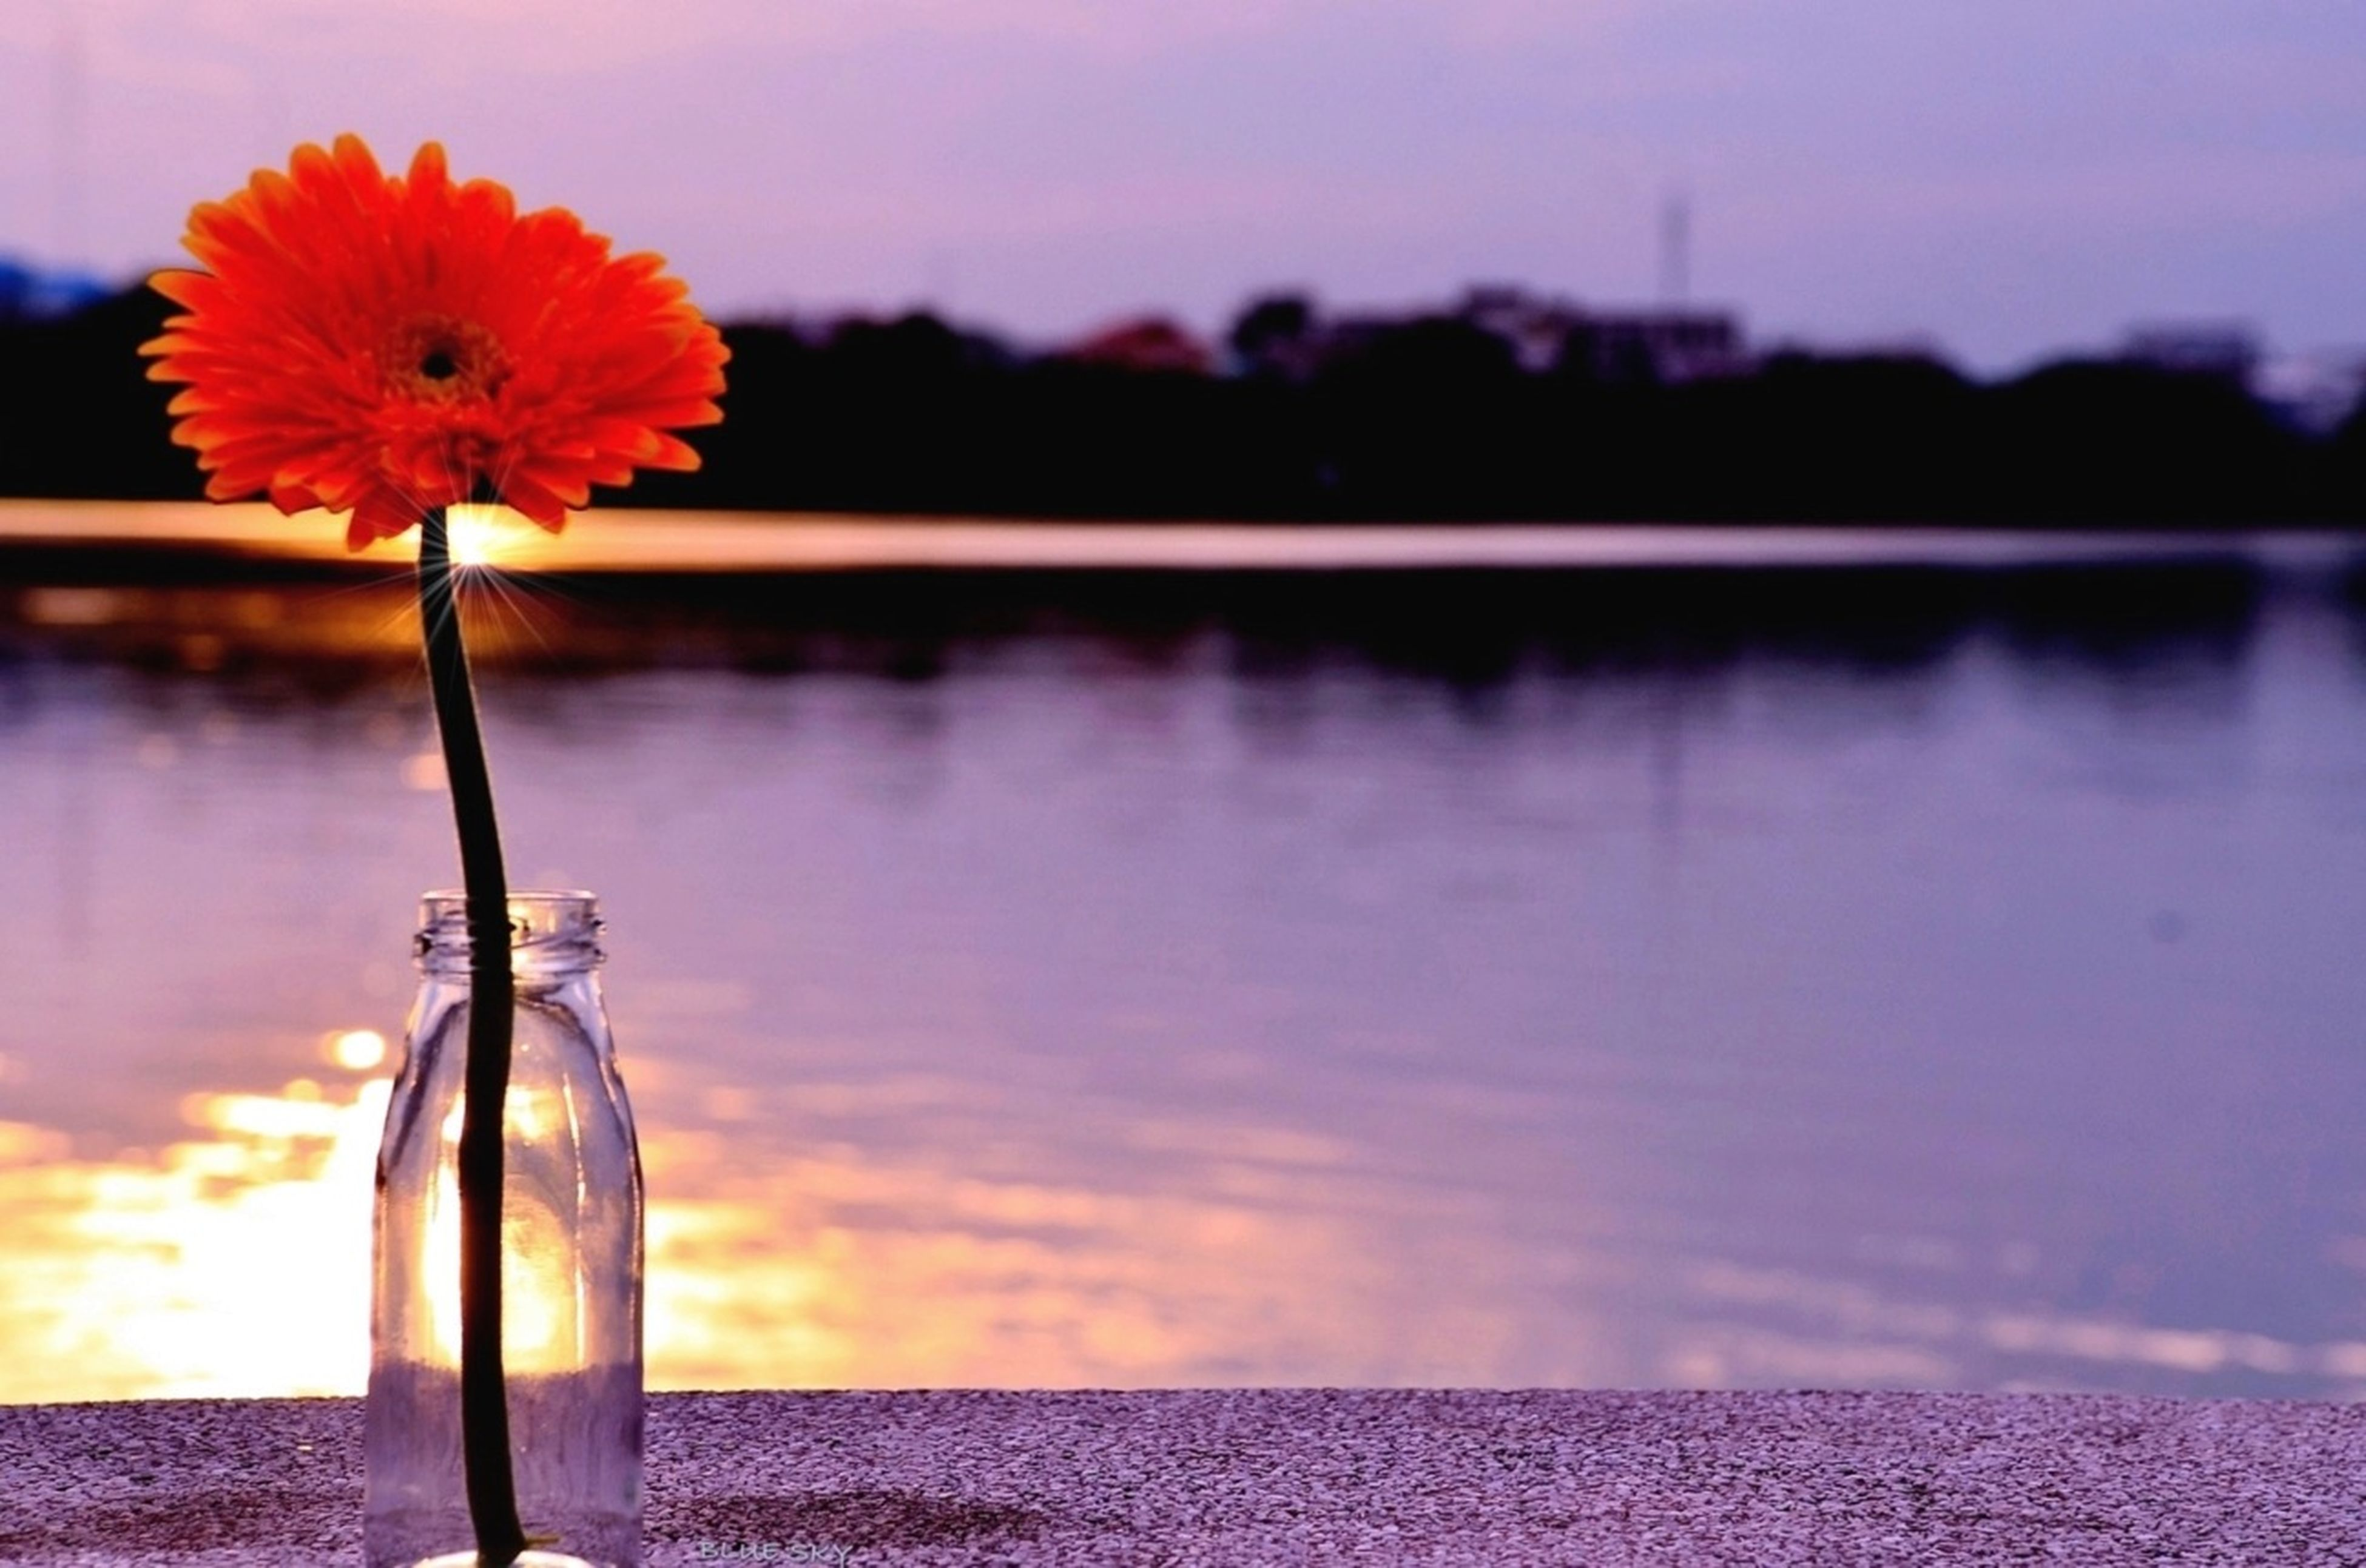 water, flower, focus on foreground, sunset, reflection, beauty in nature, freshness, fragility, lake, nature, close-up, orange color, petal, red, plant, sky, stem, outdoors, growth, tranquility